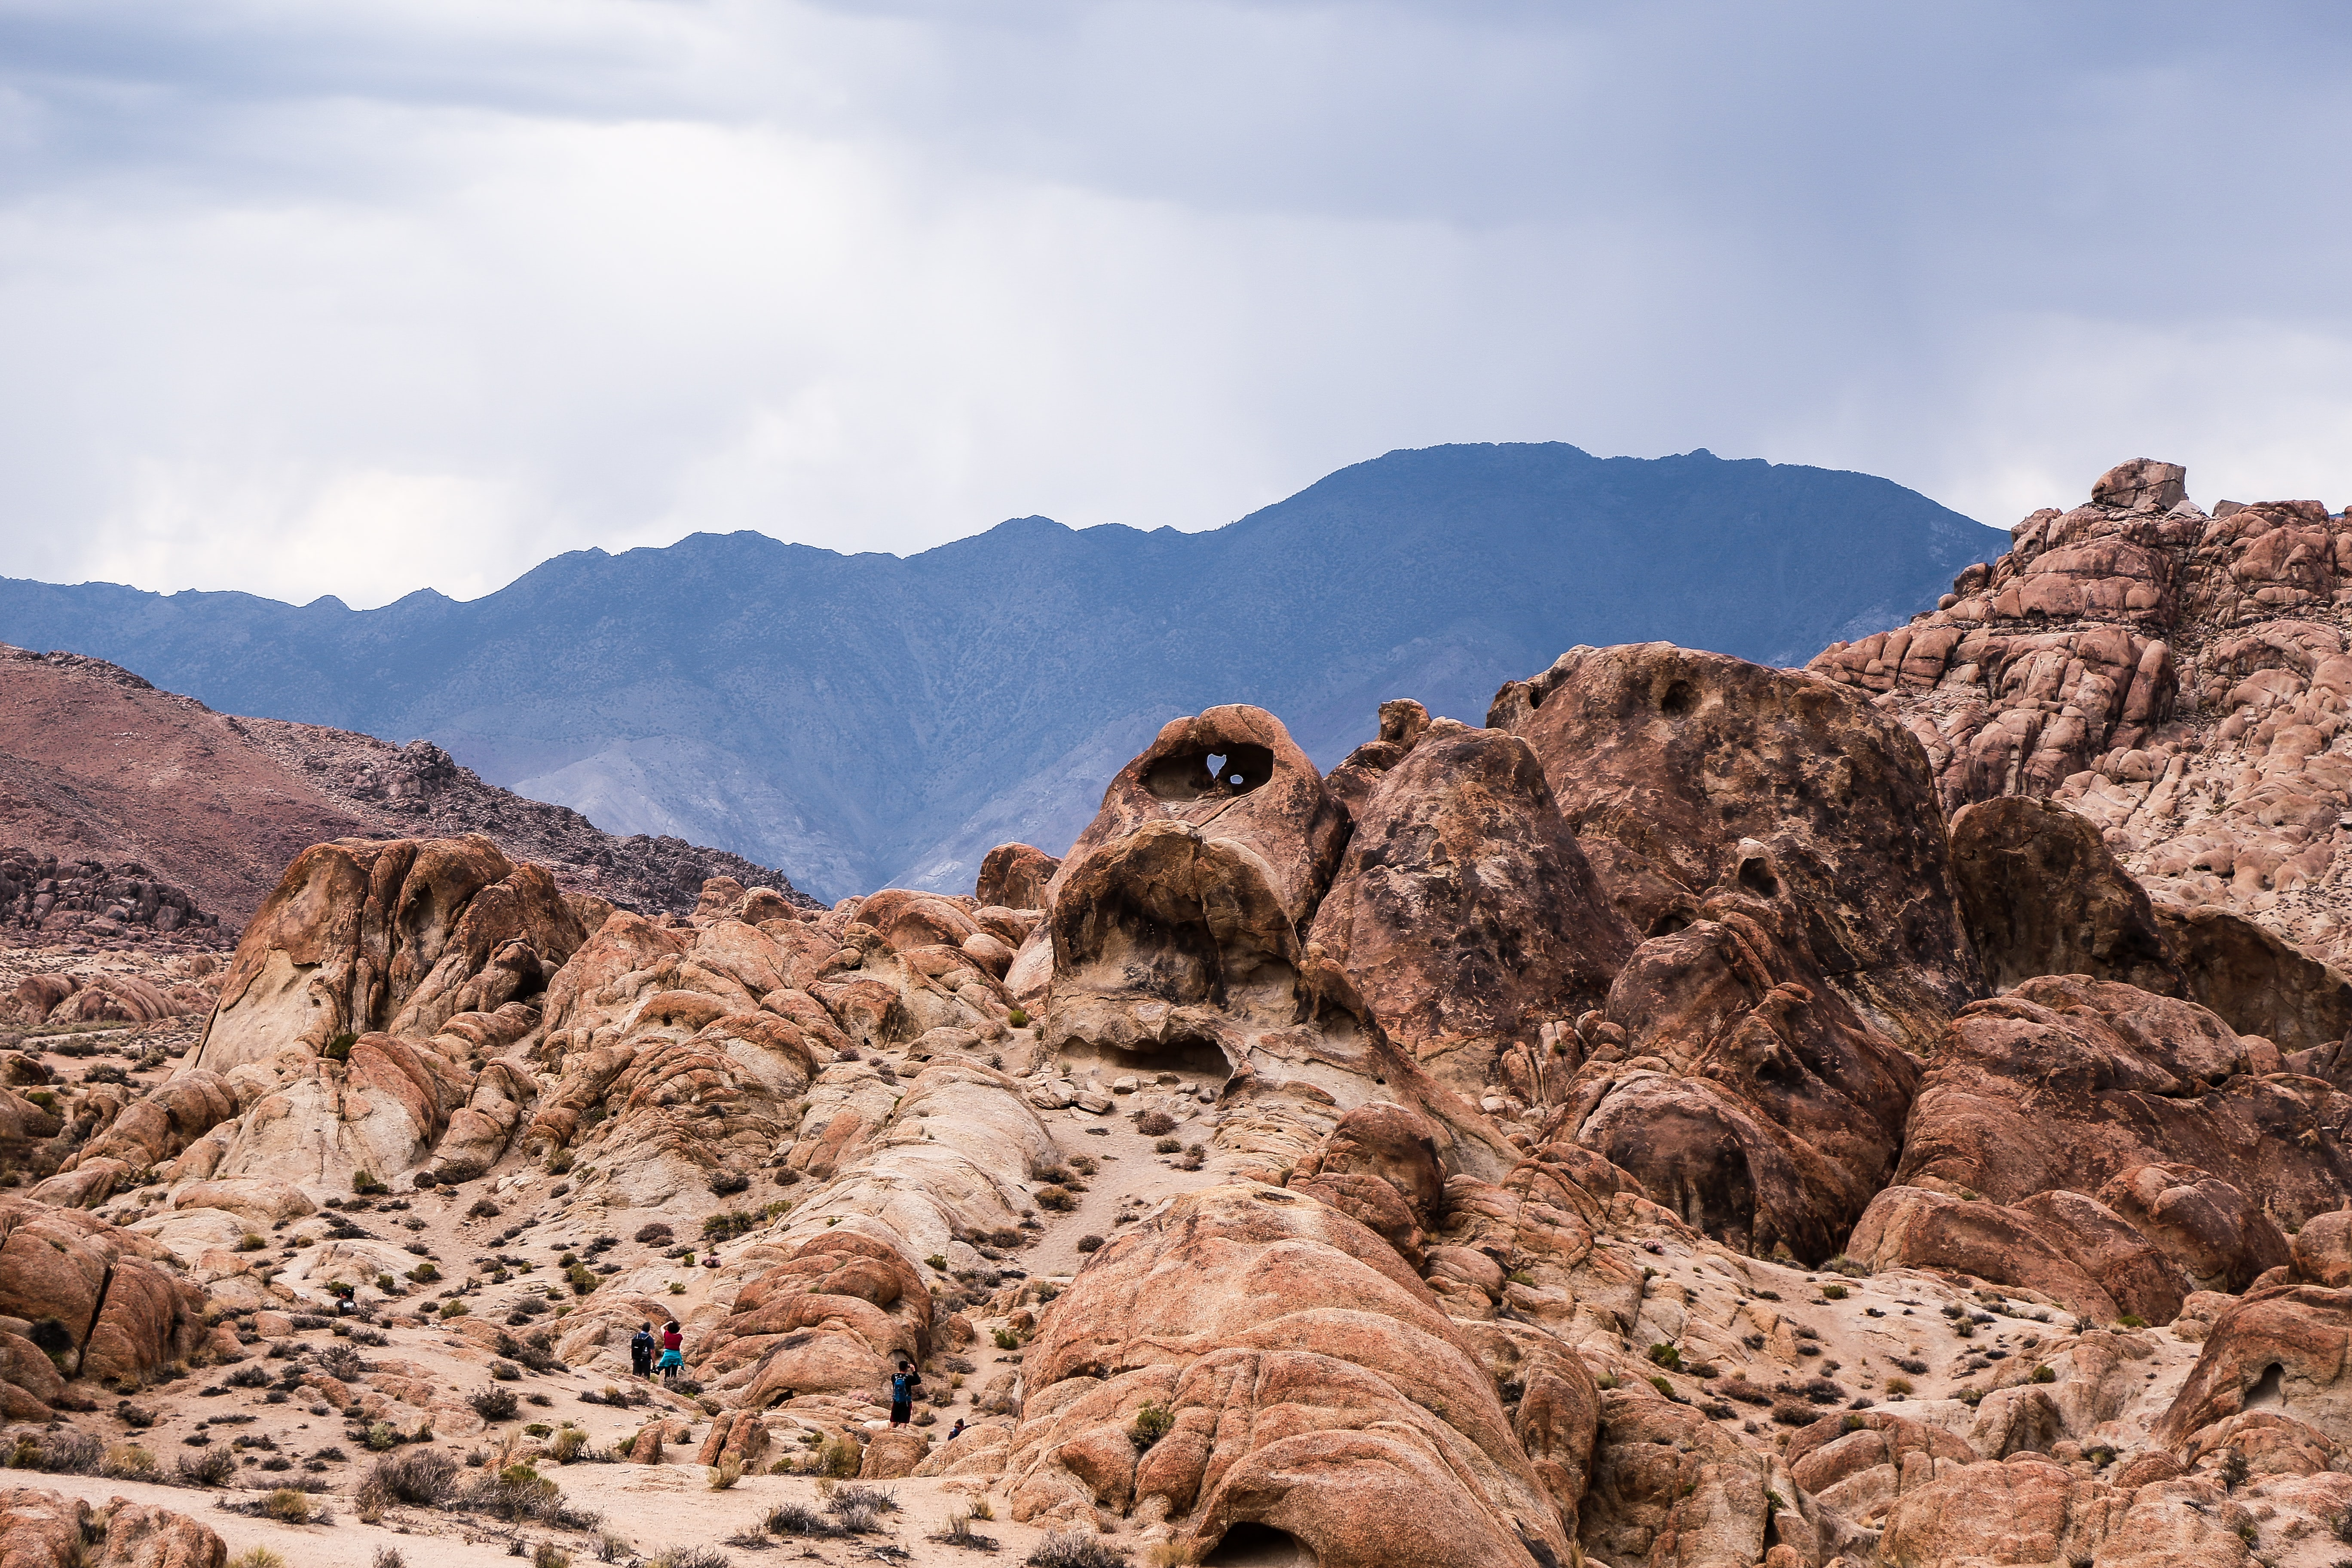 brown rock formation near mountain under cloudy sky